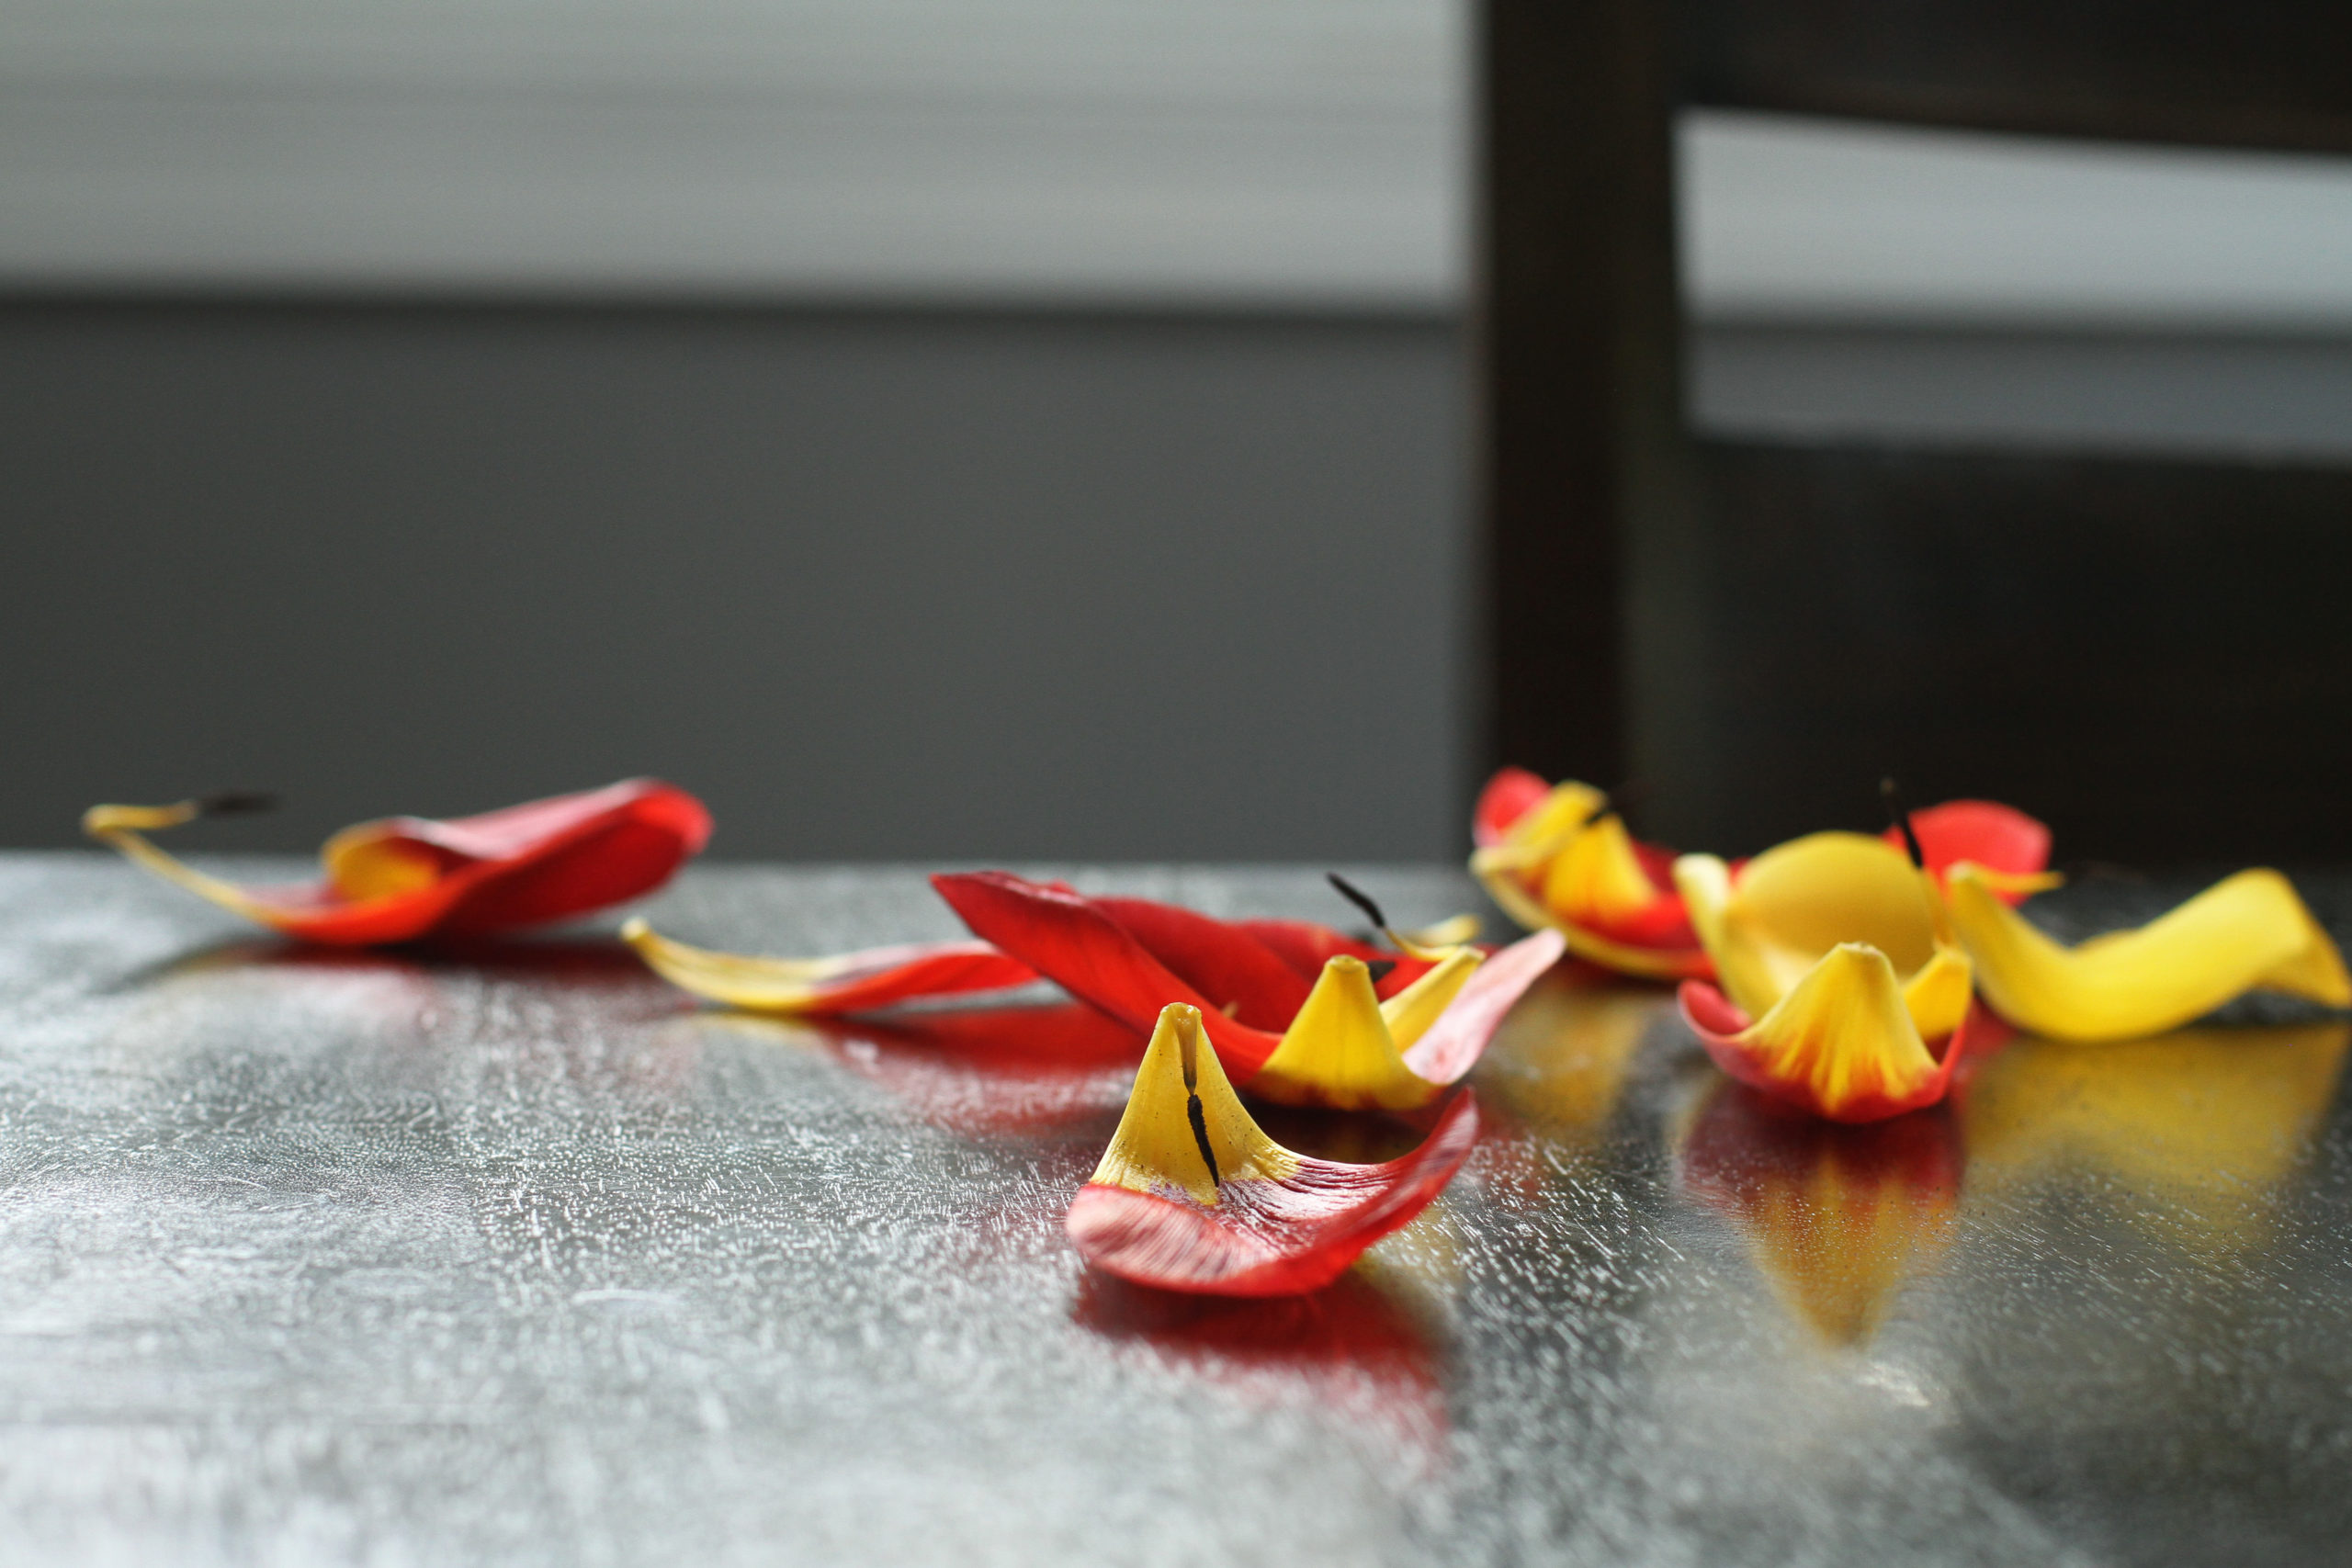 Tulip petals scattered on a table.